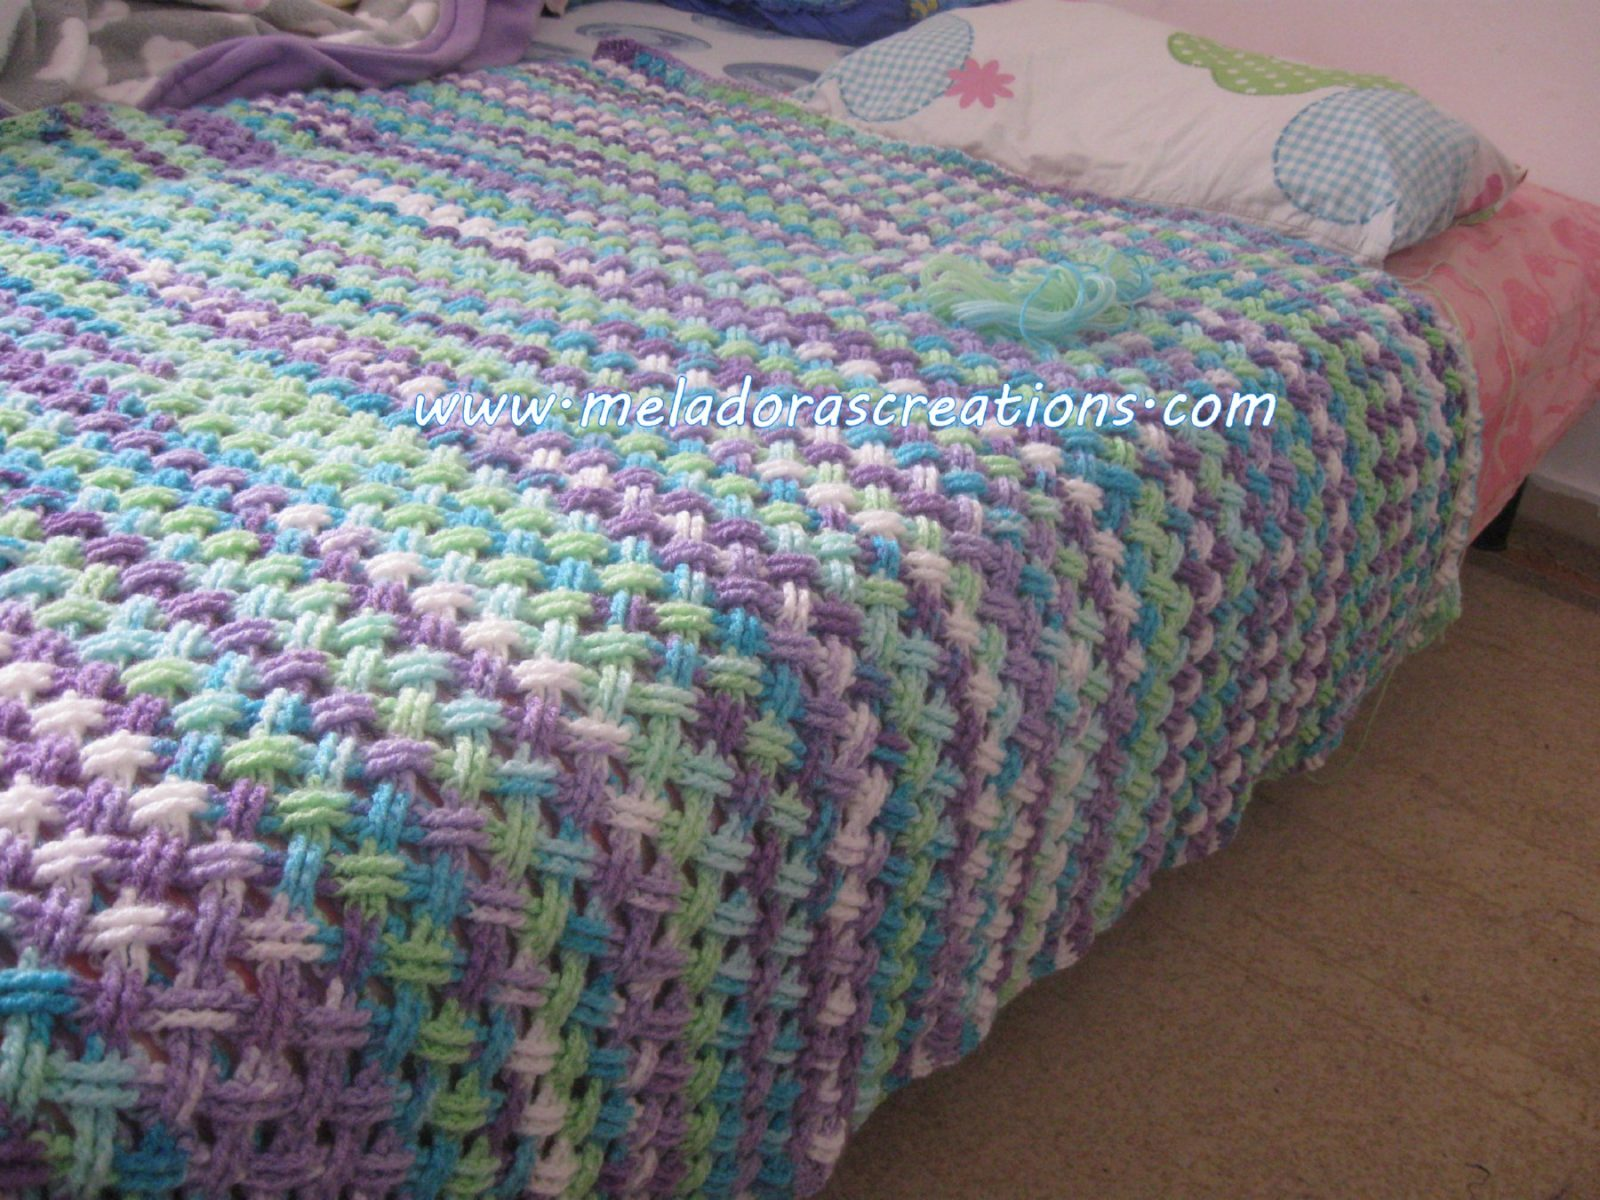 Crochet Cable Stitch : Crochet Cable Stitch Afghan Patterns